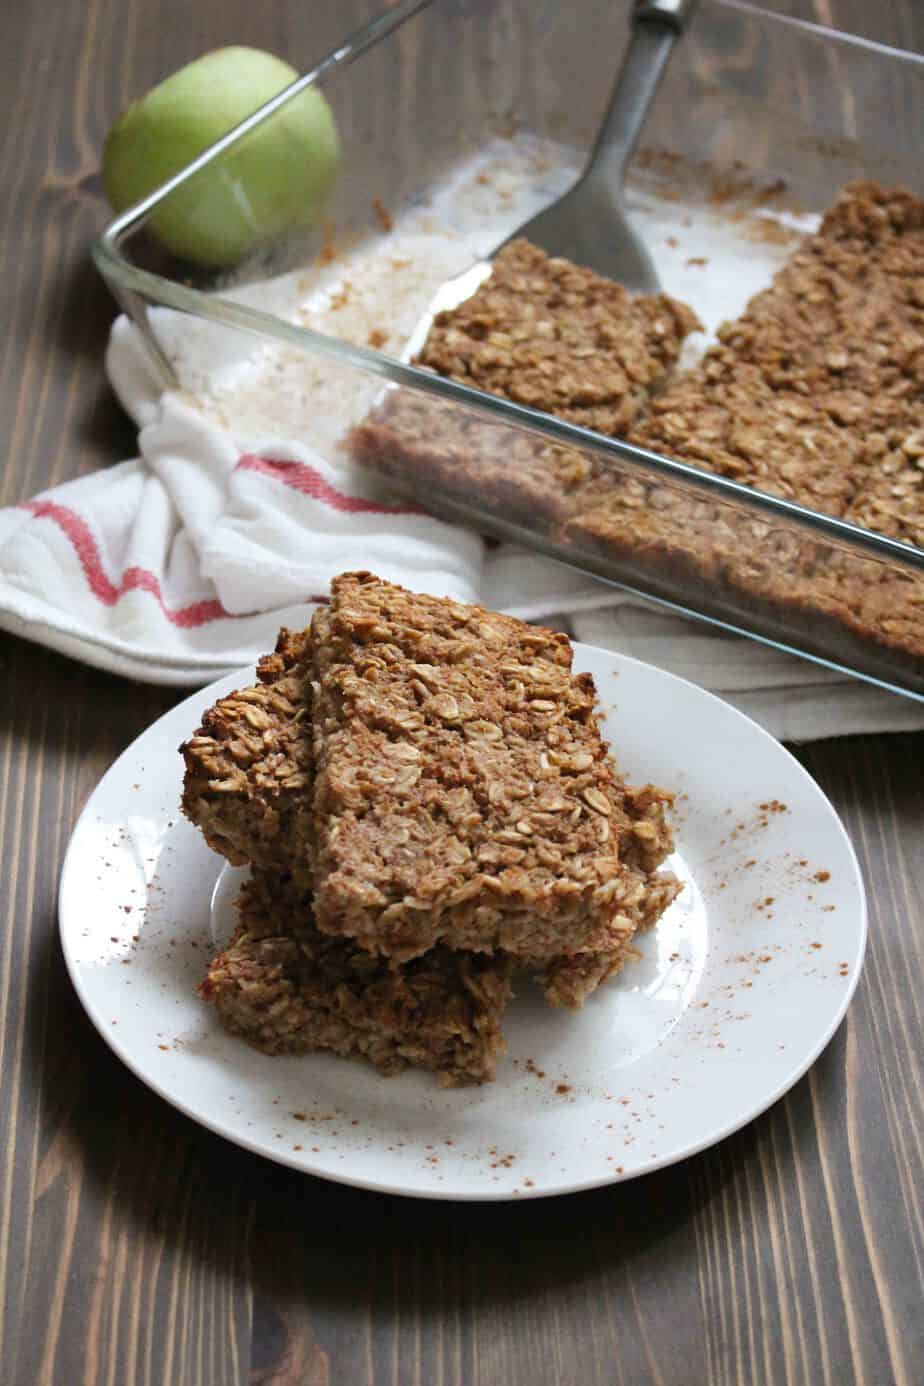 pear-baked-oatmeal-bars-for-breakfast-on-the-go-frugal-nutrition